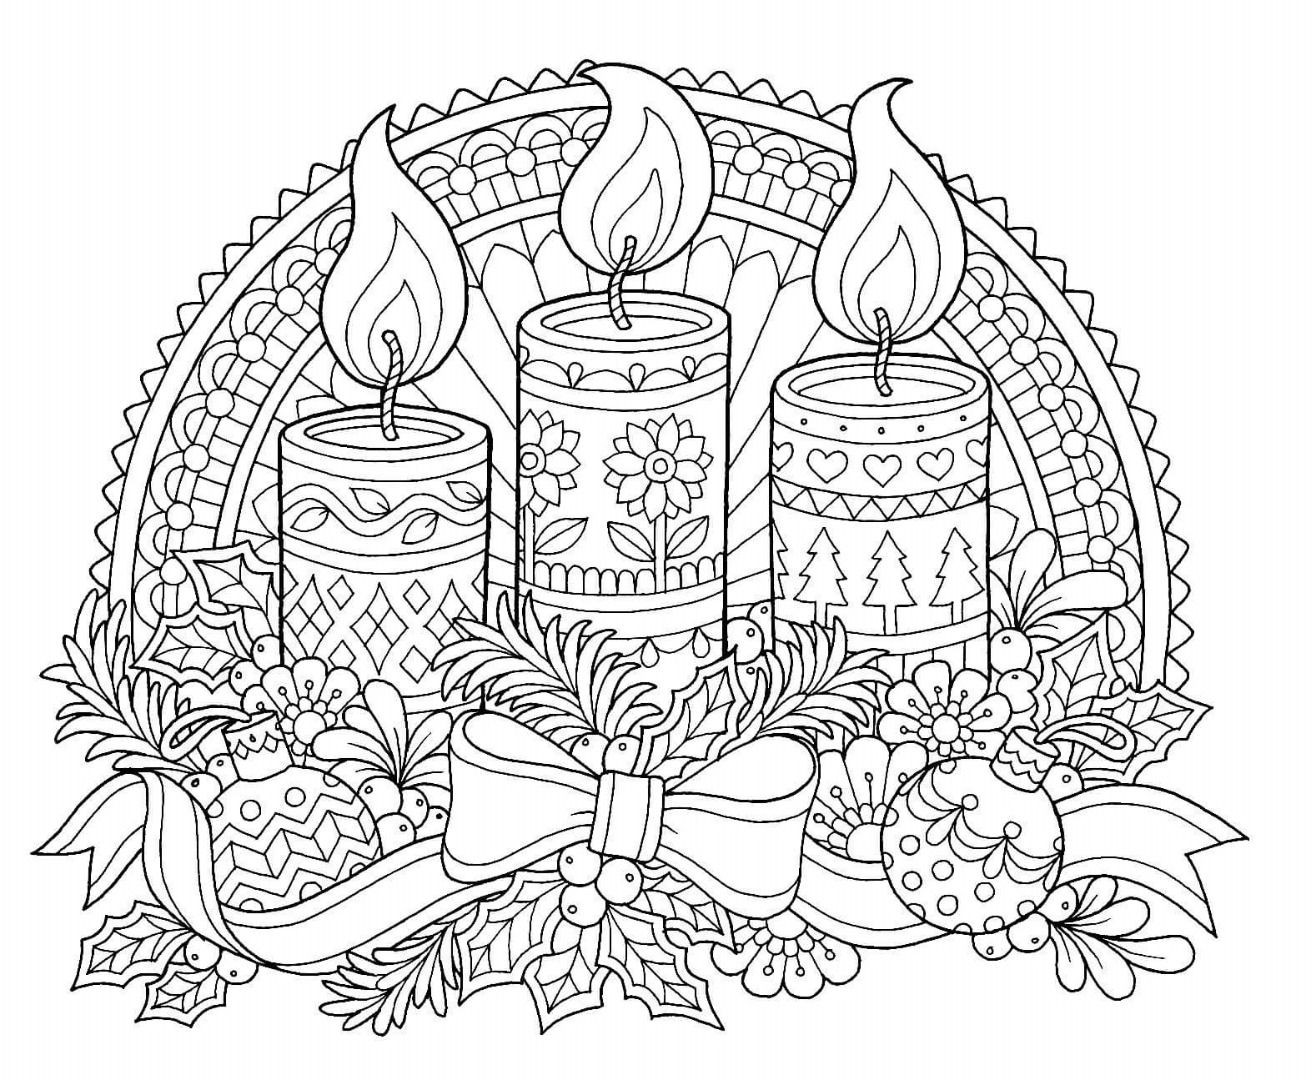 Pin By Mary Wilson On Colouring Pages For Adults Christmas Coloring Sheets Free Christmas Coloring Pages Printable Christmas Coloring Pages